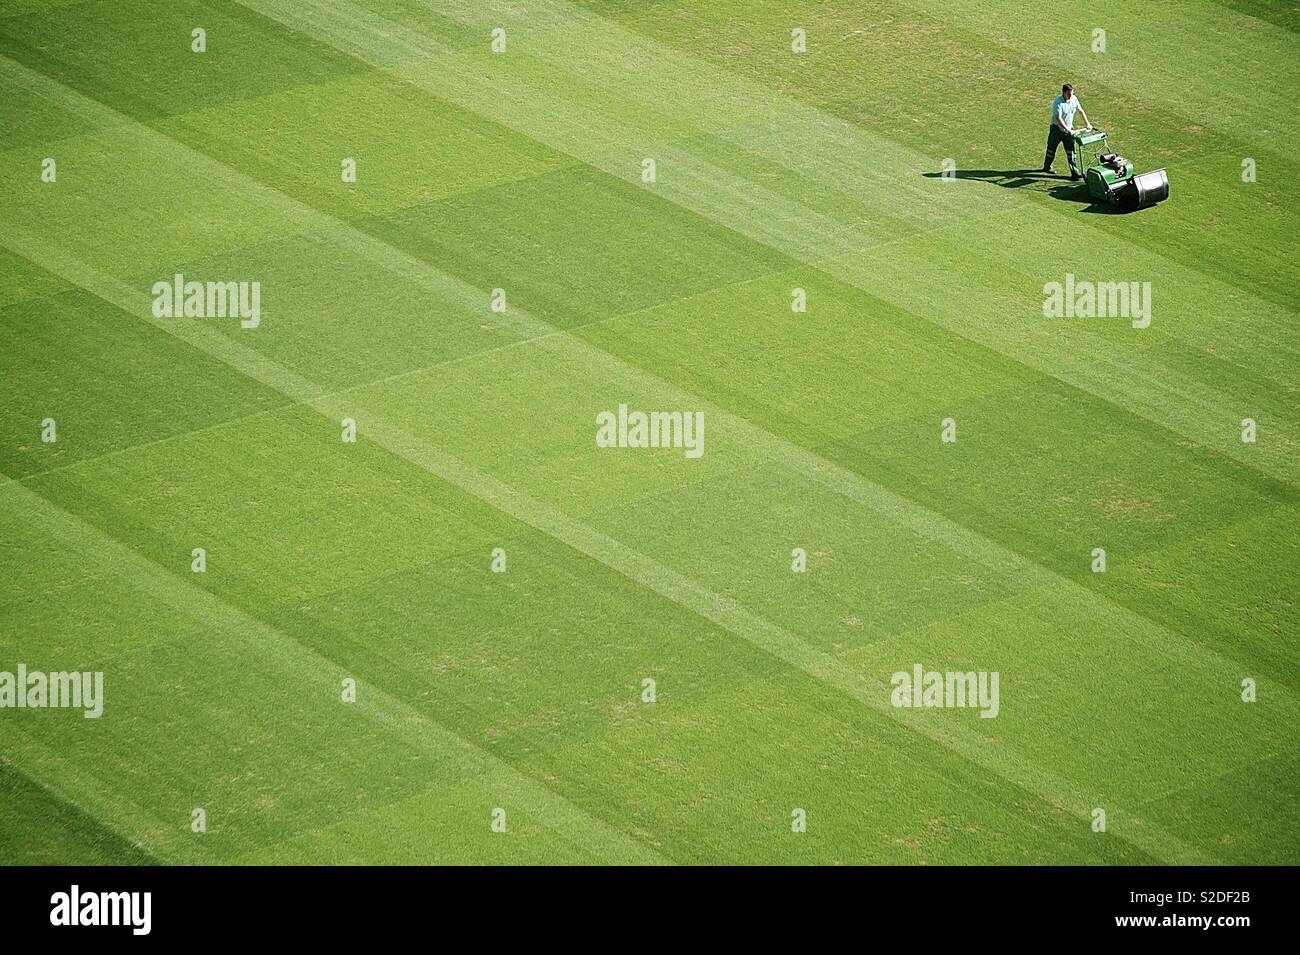 Un groundsman coupe l'herbe. Photo Stock